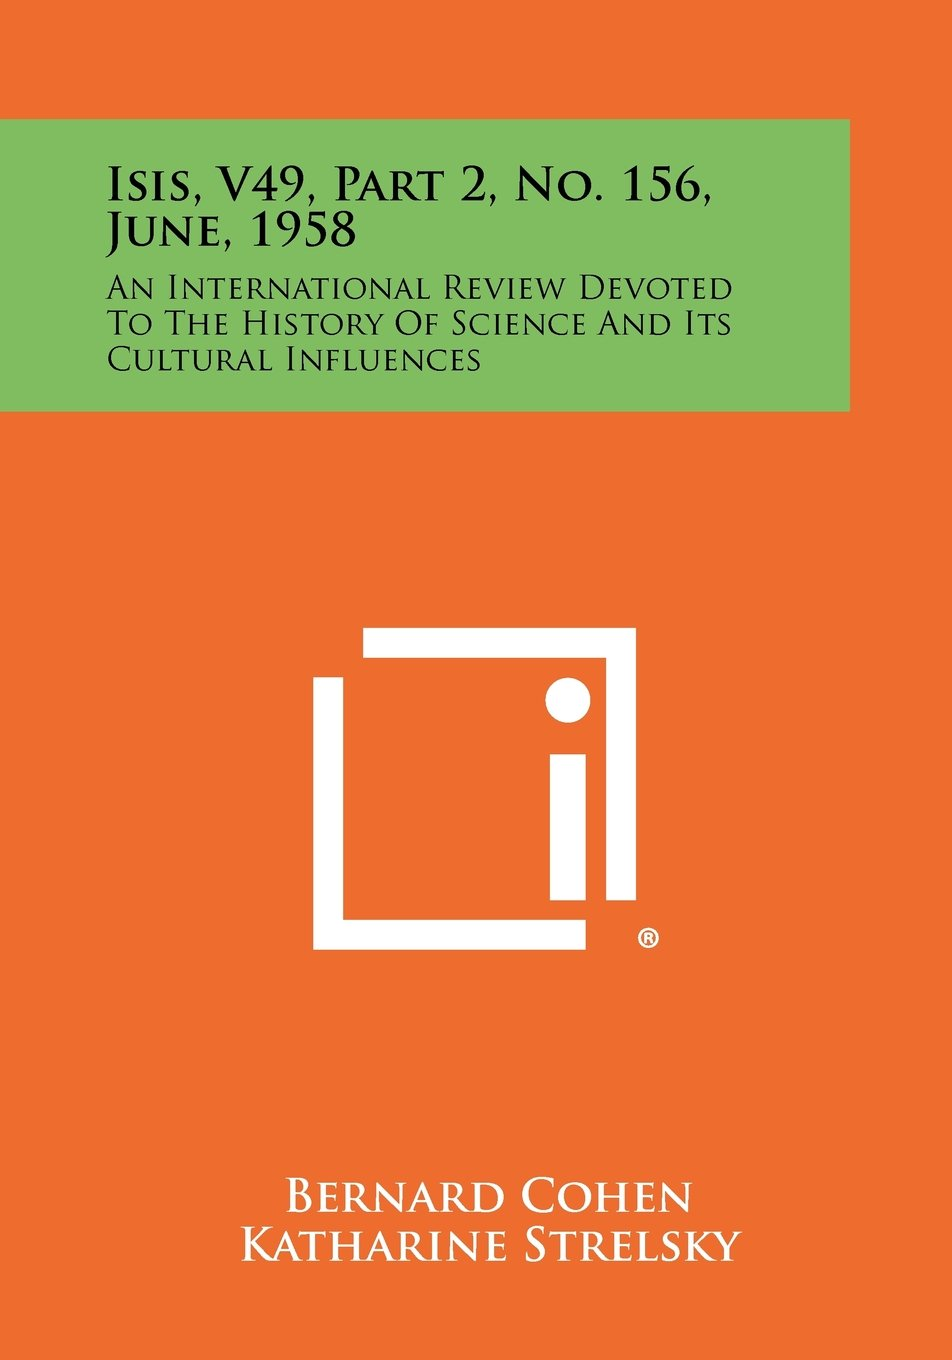 Download Isis, V49, Part 2, No. 156, June, 1958: An International Review Devoted To The History Of Science And Its Cultural Influences PDF